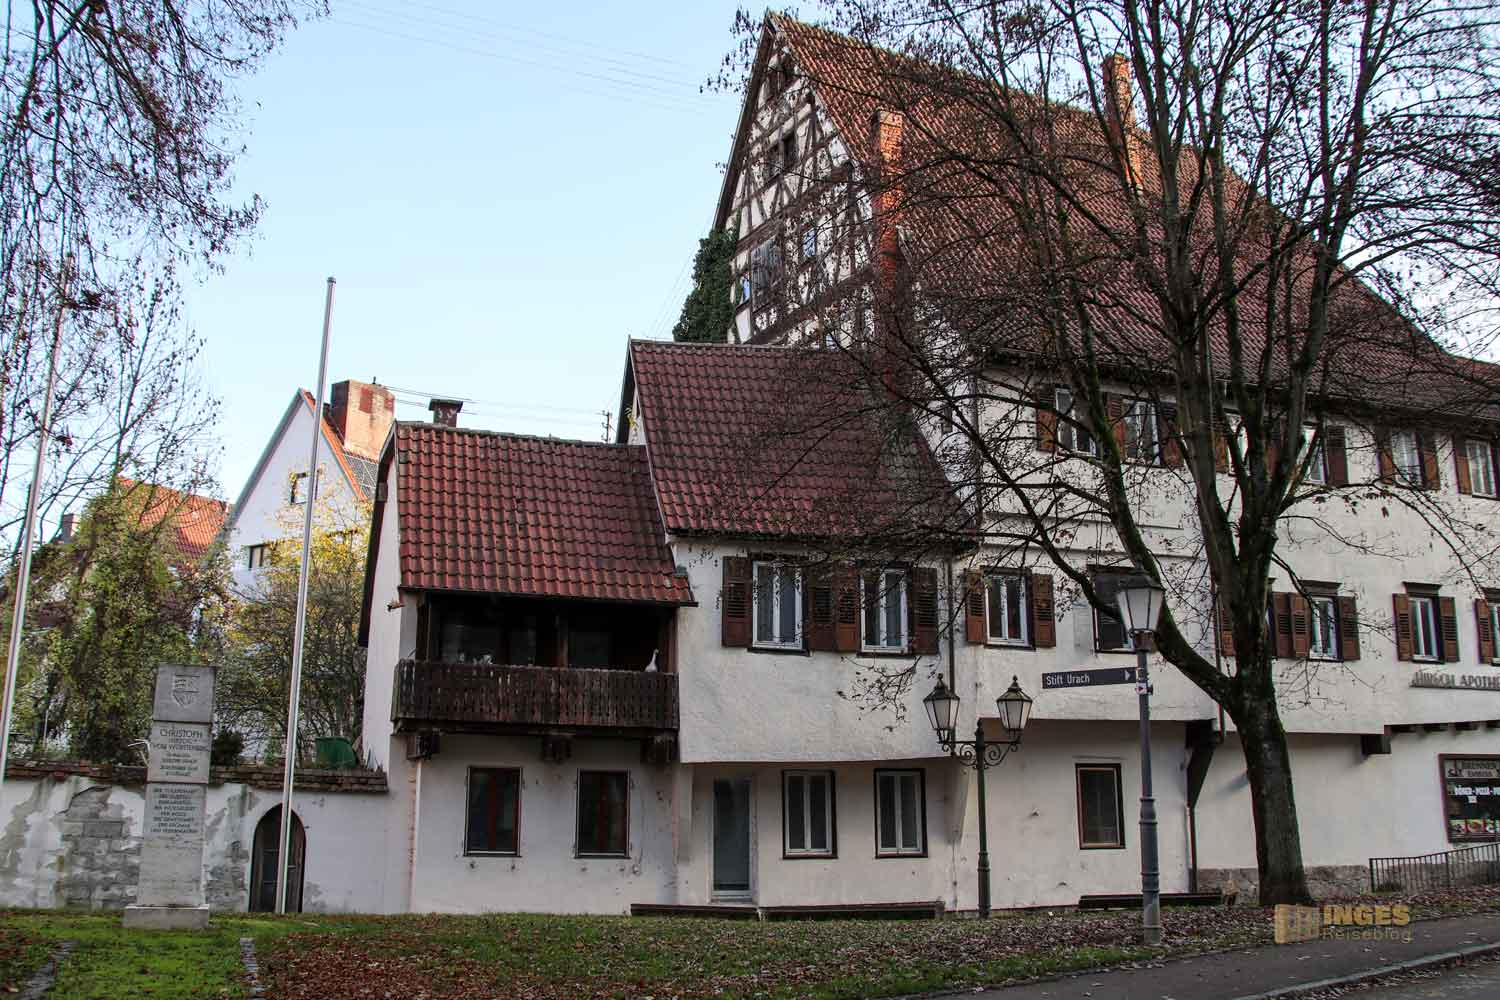 Sprandel'sches Haus in Bad Urach 0594